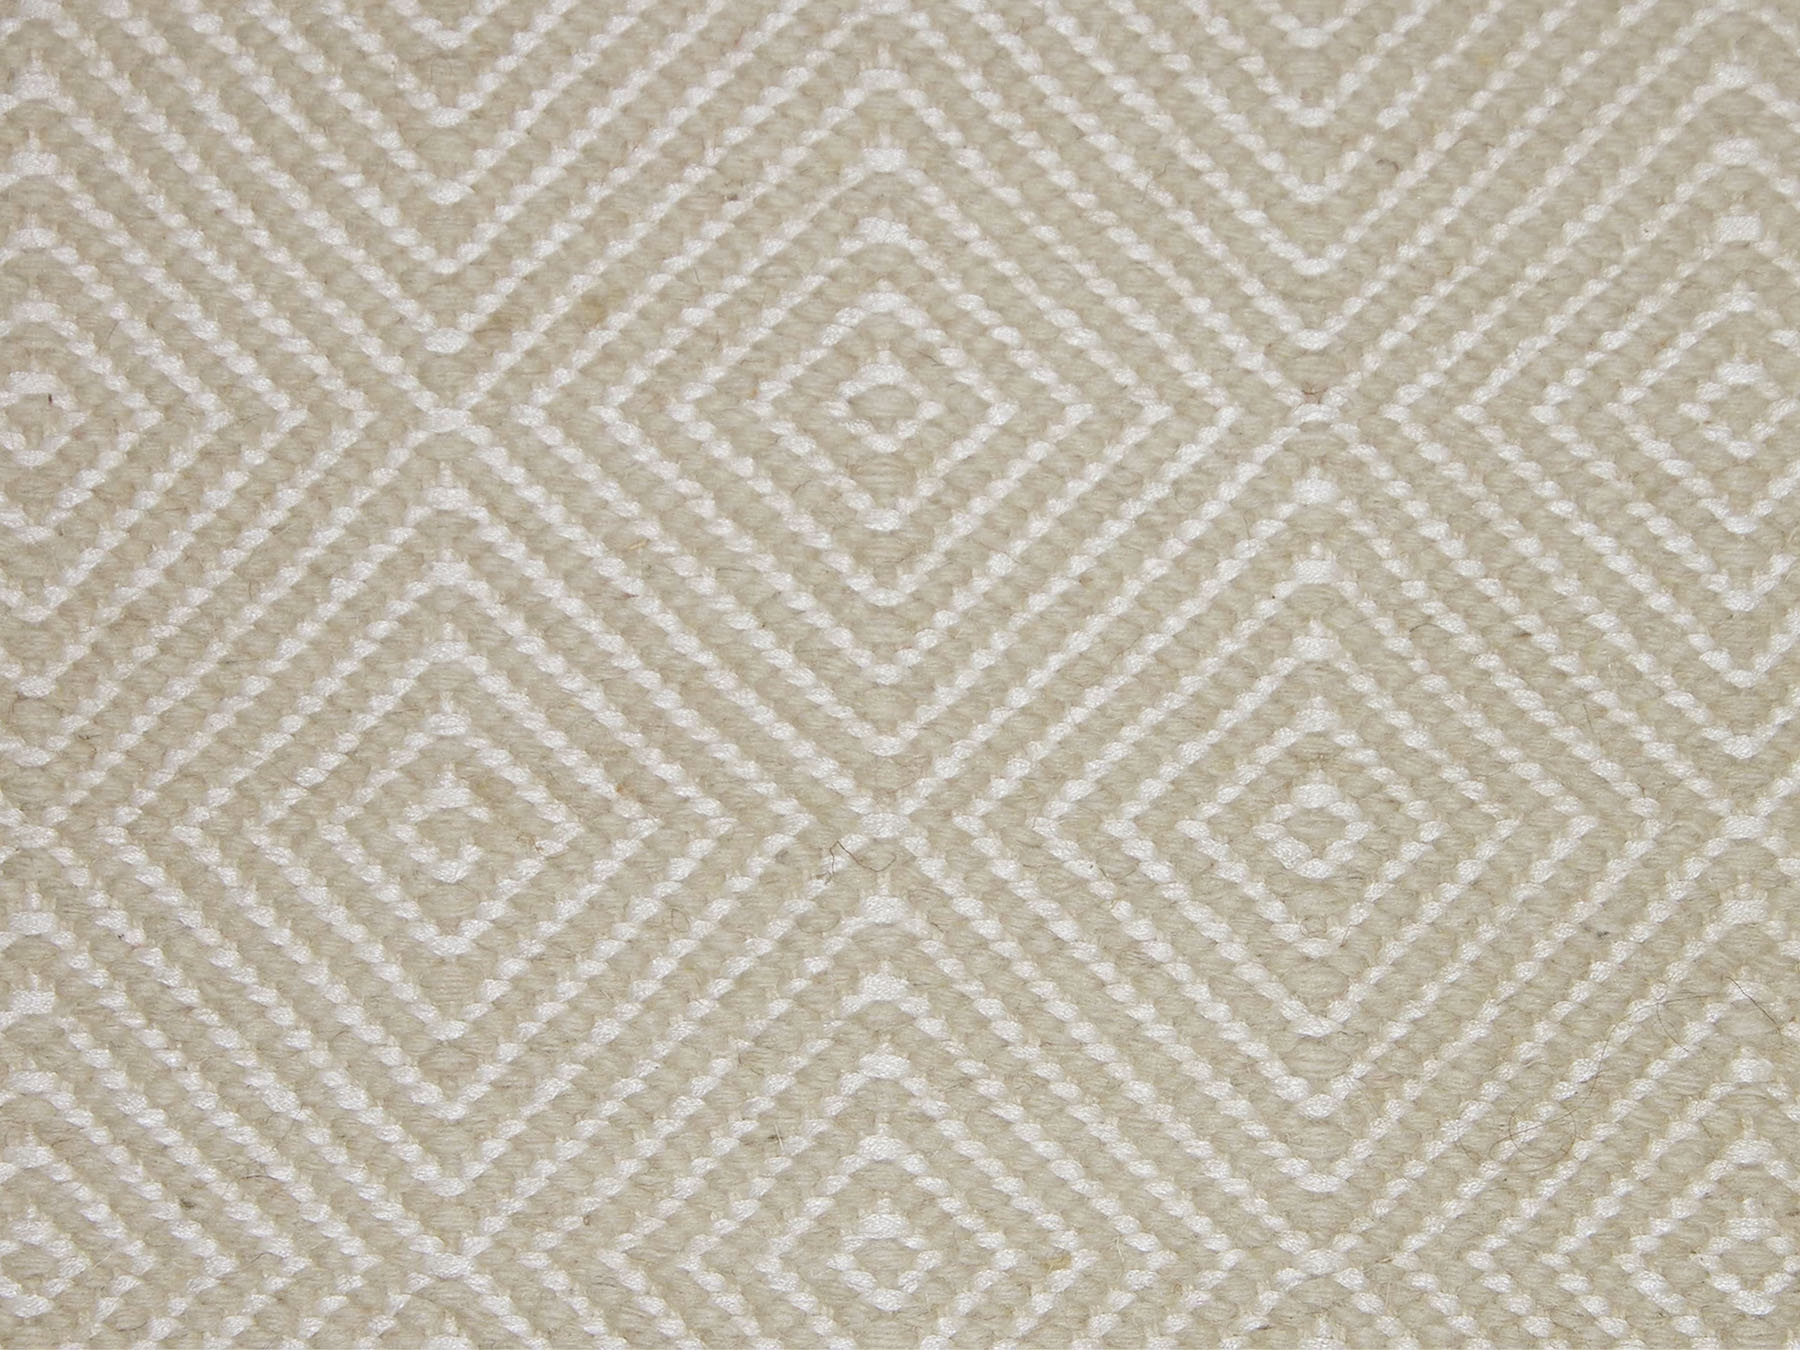 Sisal Rug 9×12 Patterned Sisal Rug But Neutral Full Size Of Wool For Wool Sisal Area Rugs (#8 of 15)